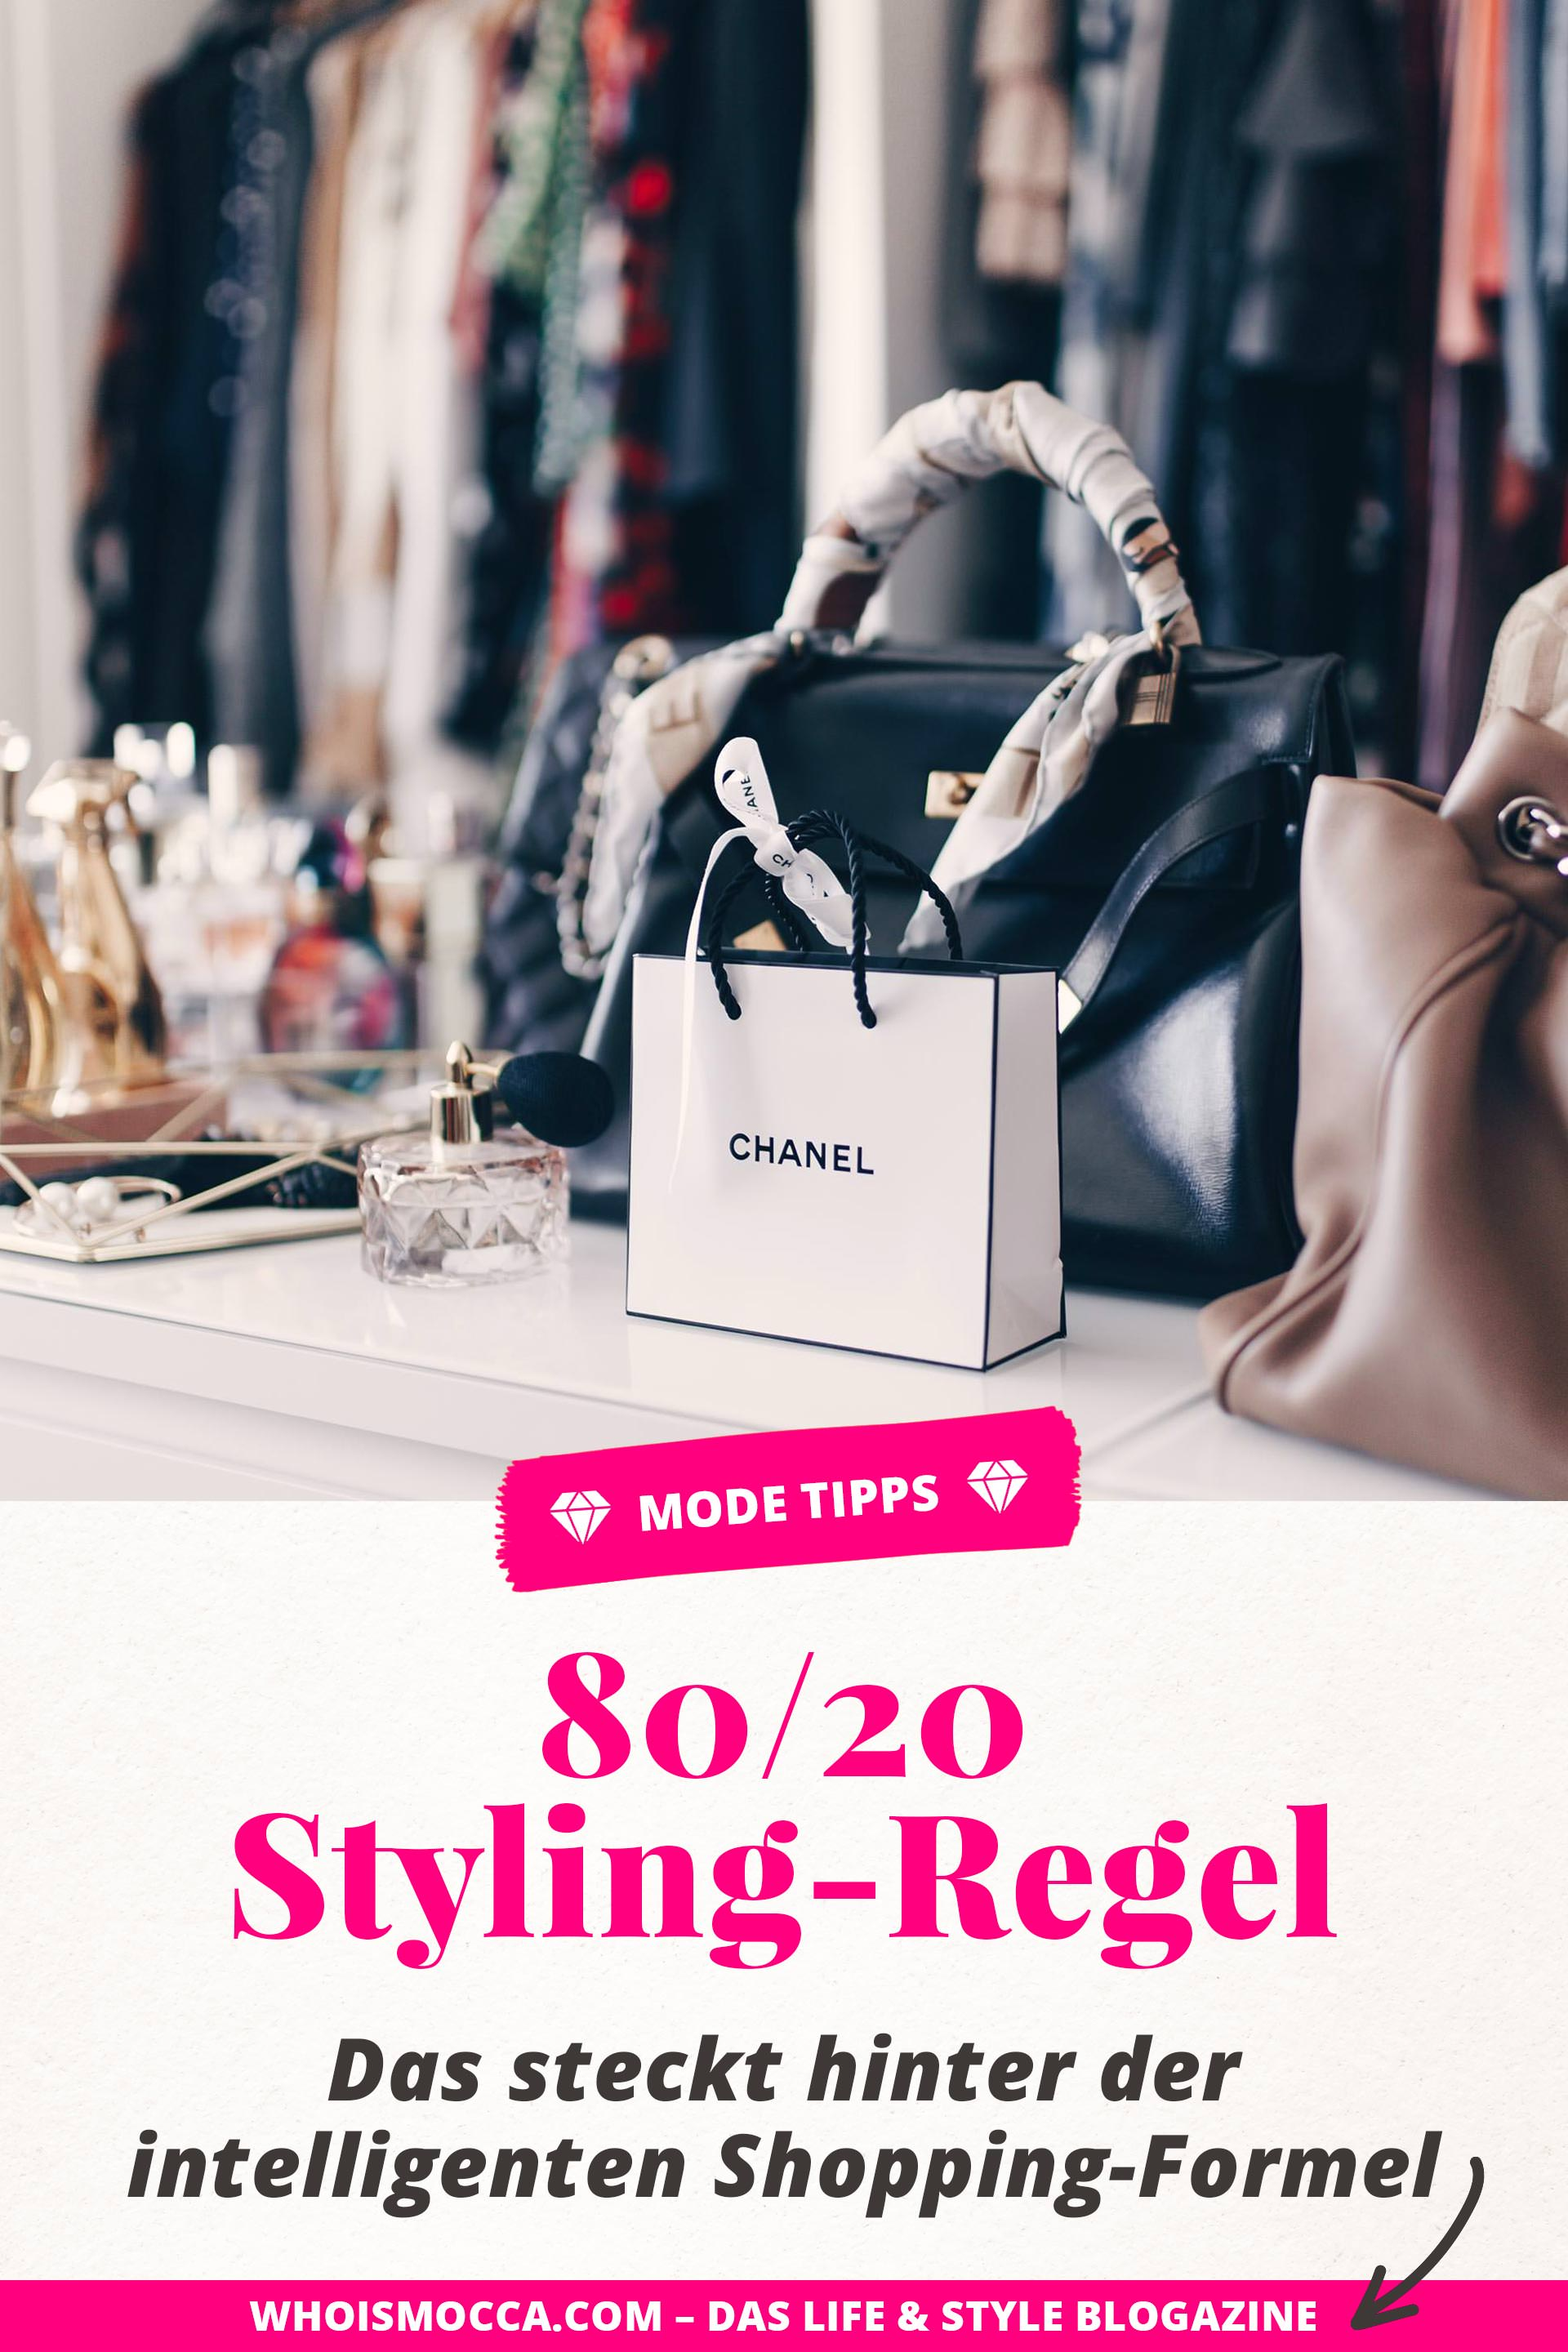 Die 80/20 Styling-Regel für Modefrauen, Fashion Tipps, Modetrends, Outfit Ideen, Styling Tipps, Trendreport, Fashion Blog, Modeblog, Outfit Blog, Style Blog, #fashiontrends #stylingtipps #modeblogger #trends www.whoismocca.com